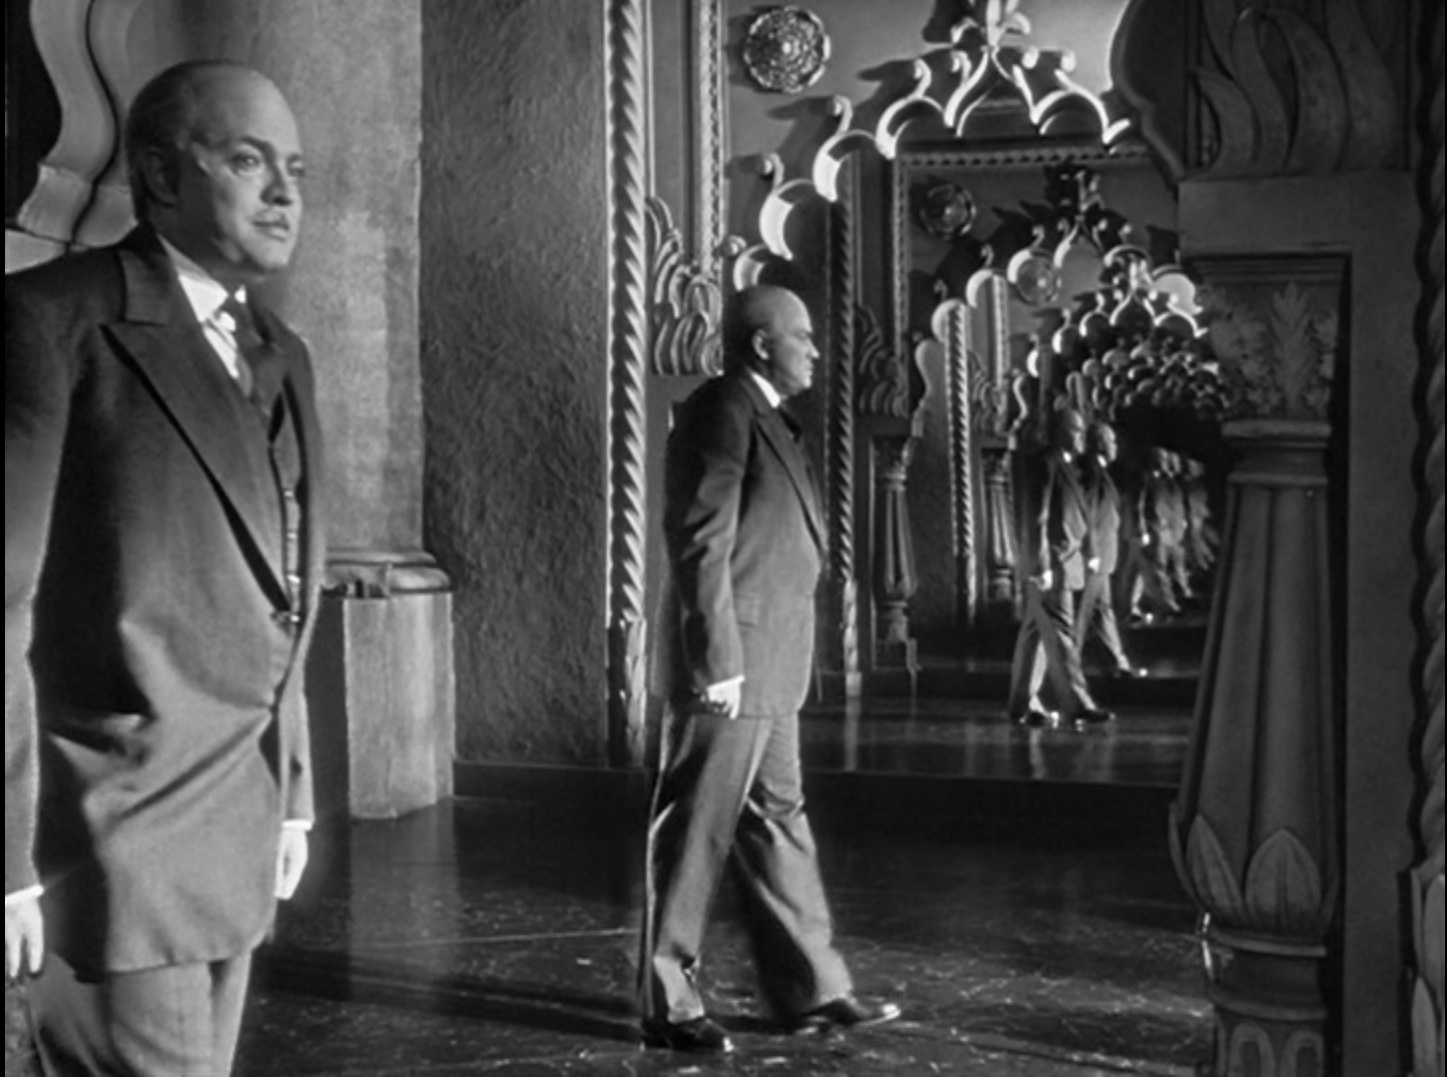 an analysis of citizen kane a movie by orson welles Awards season released in 1941, it was the an analysis of the movie citizen kane by orson welles first movie free good citizen papers, essays, and research papers.